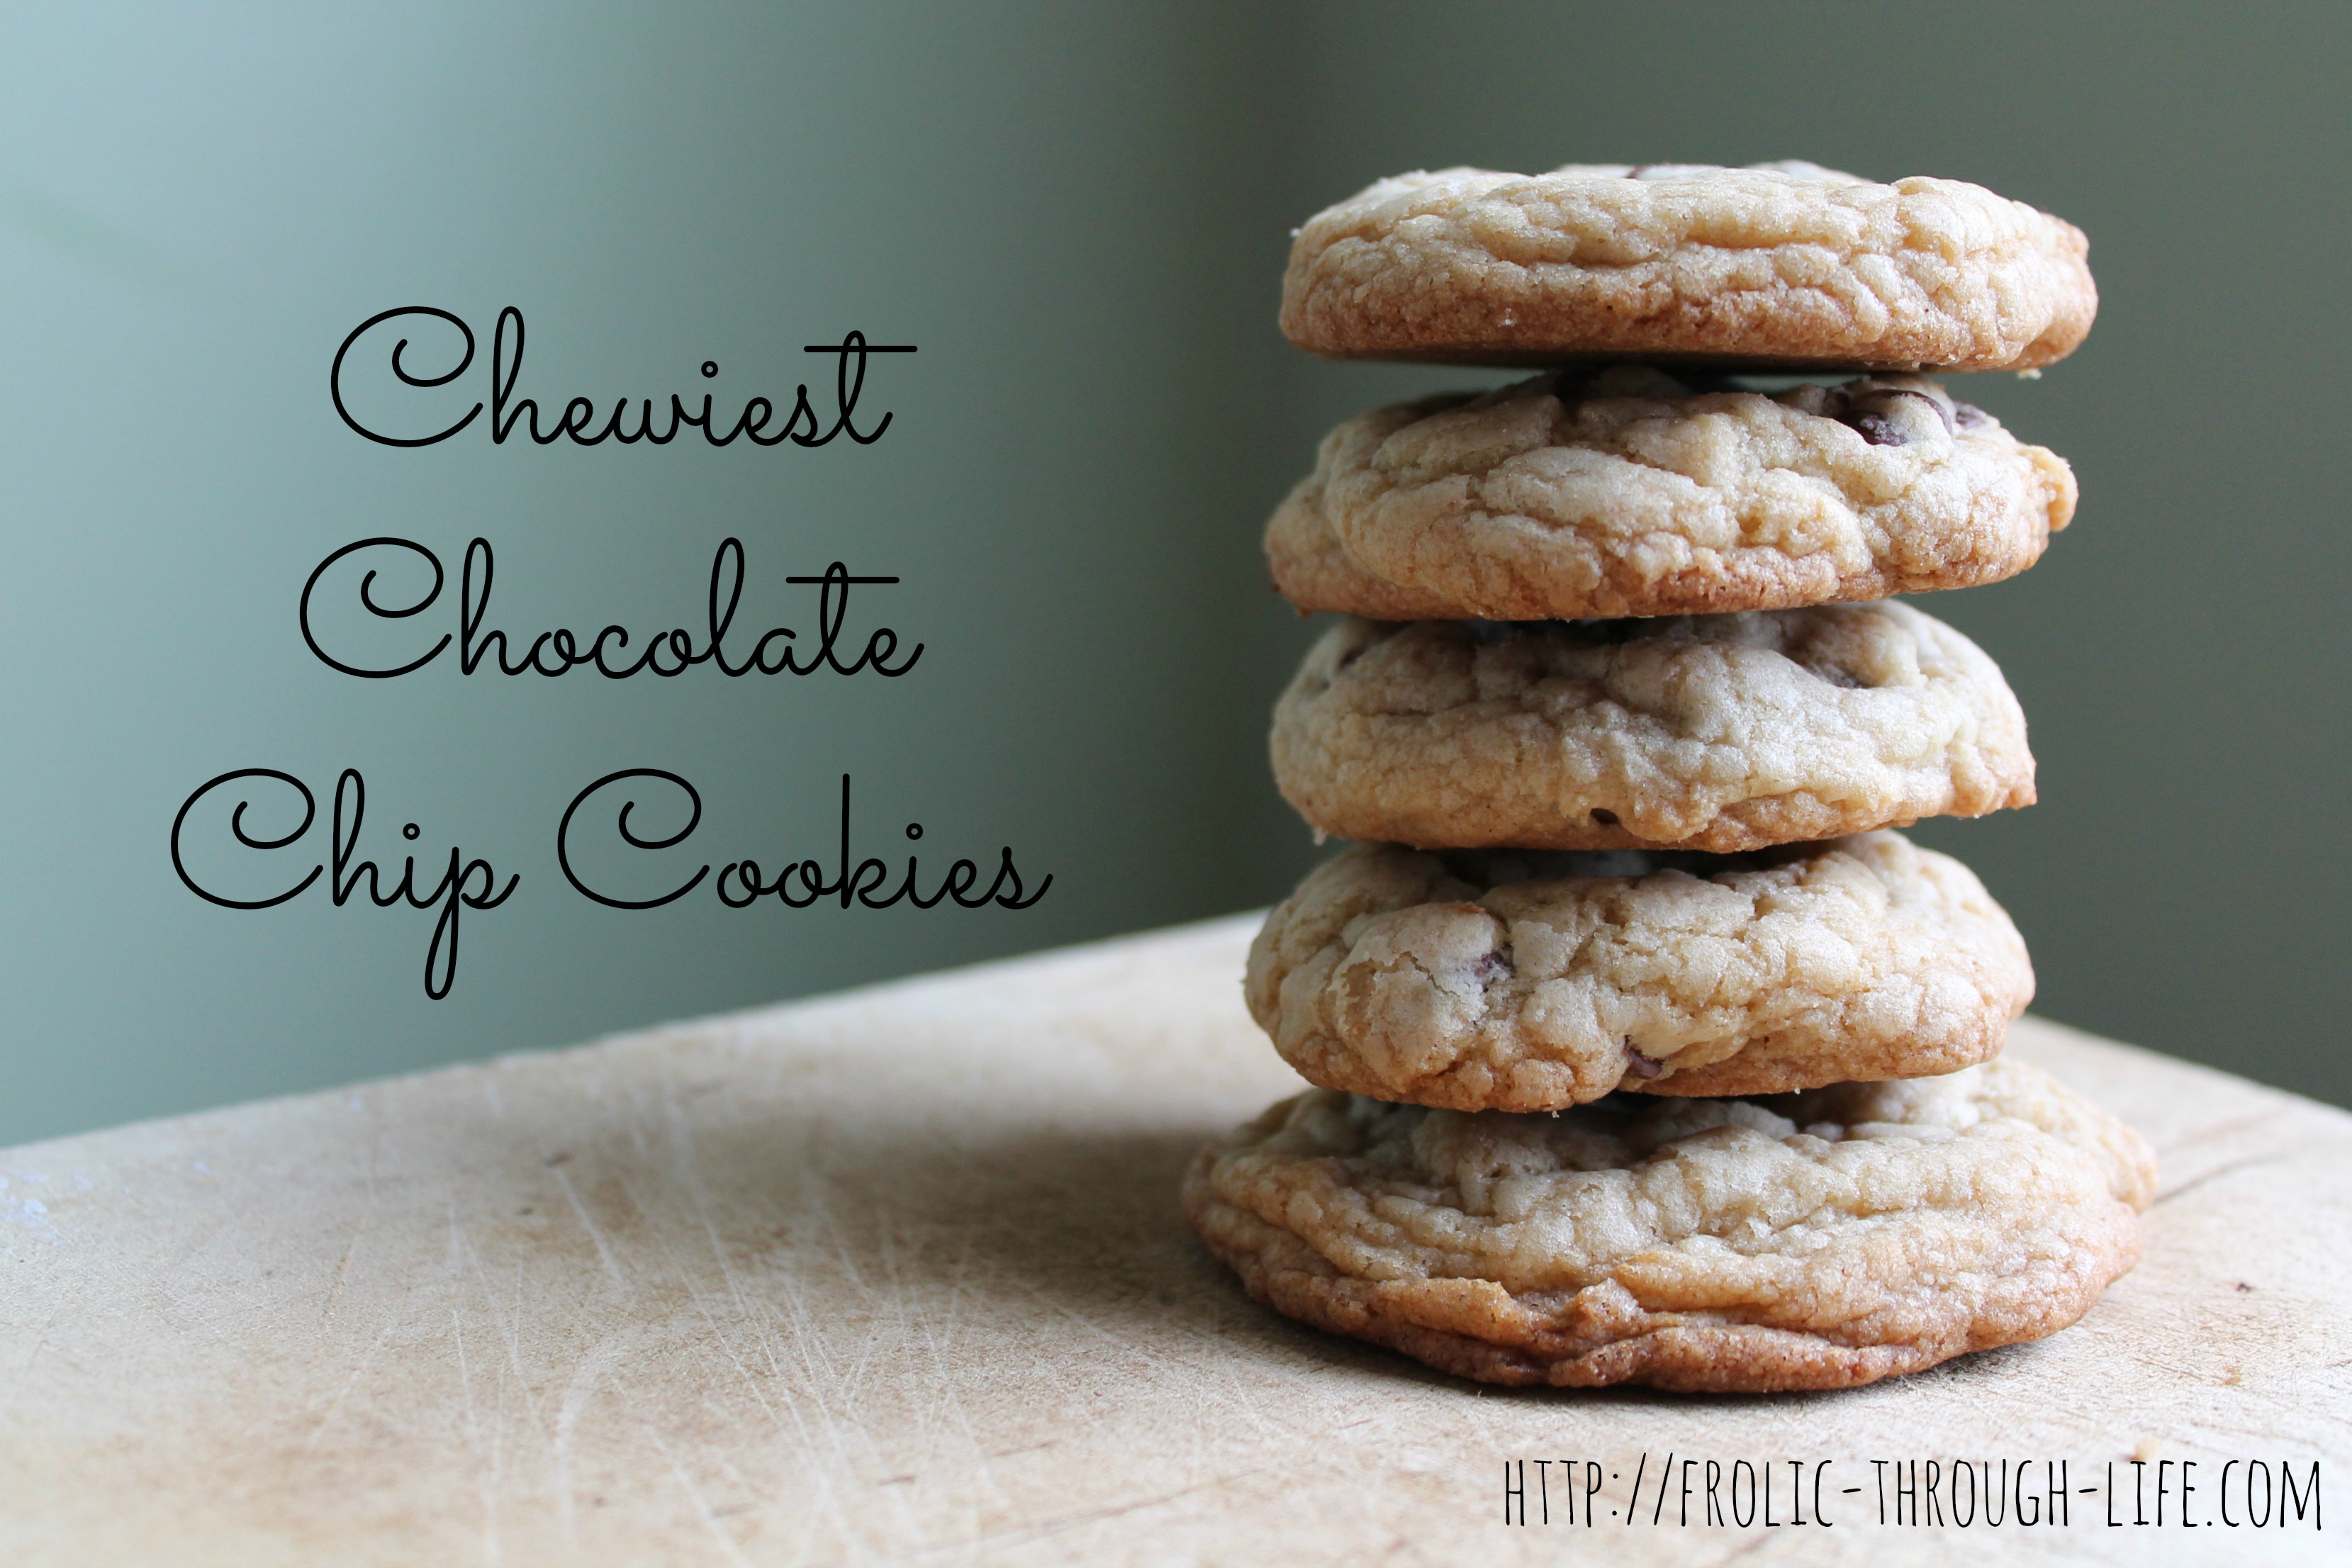 Chewiest Chocolate Chip Cookies